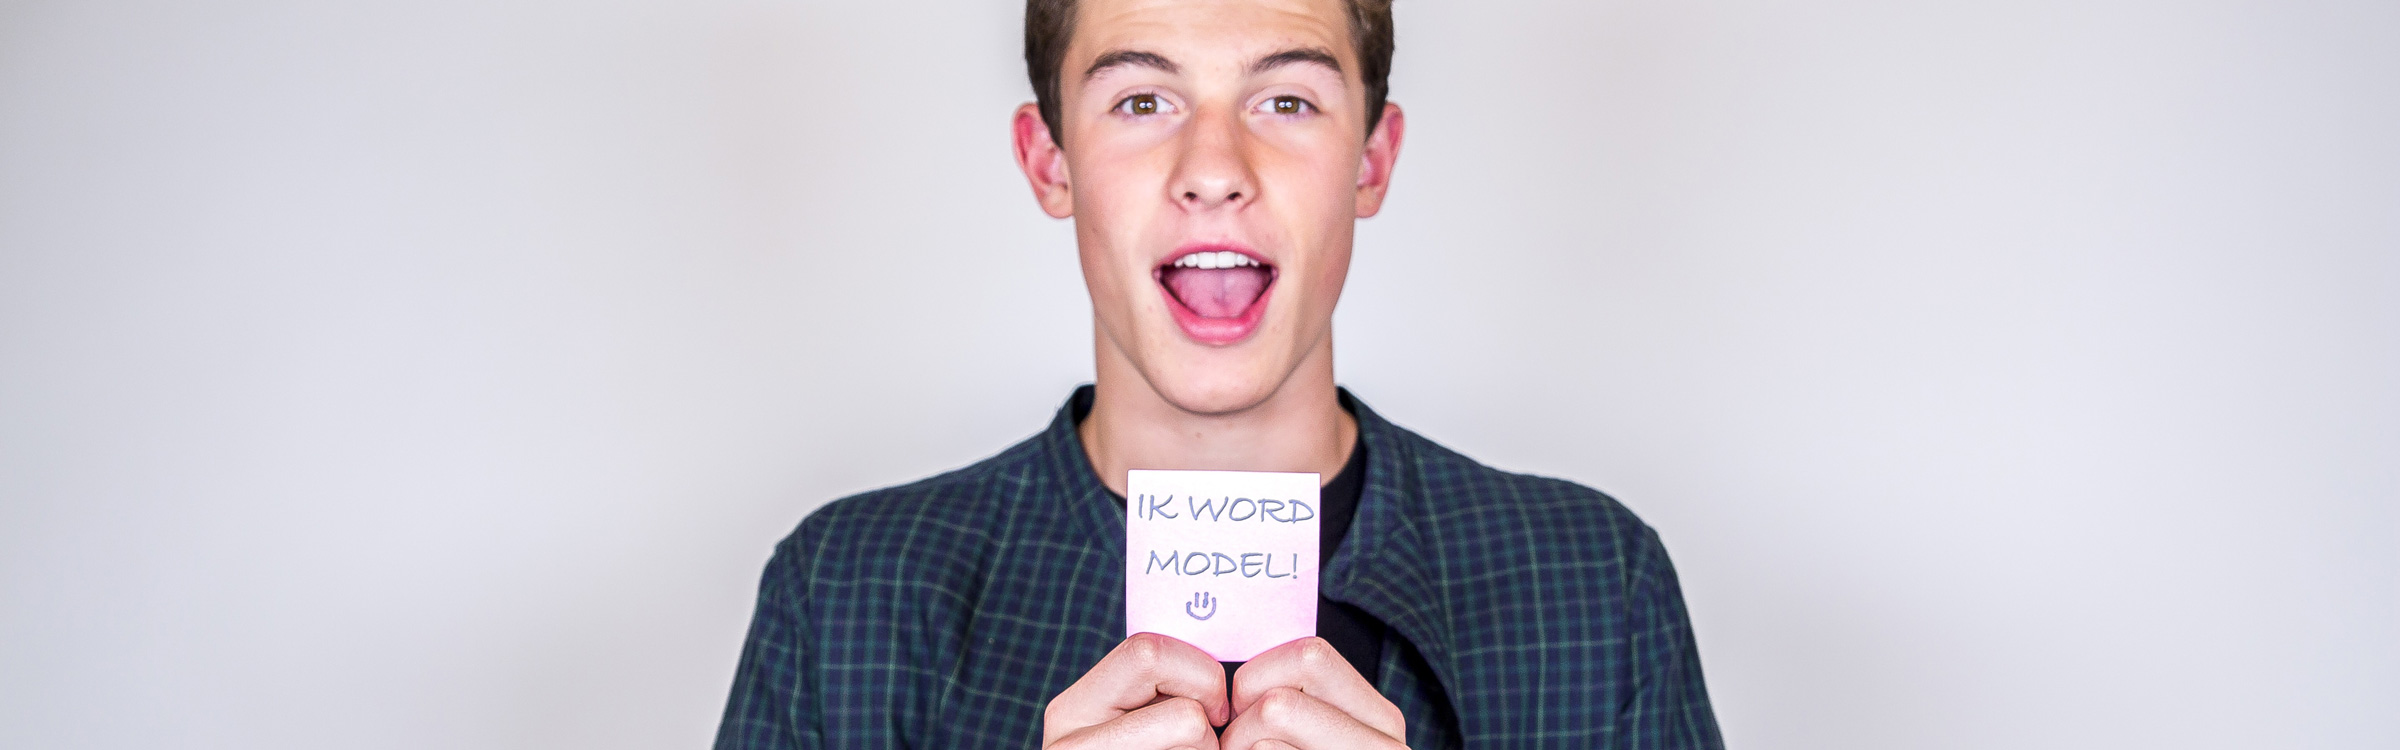 shawn mendes aan de slag als model   qmusic